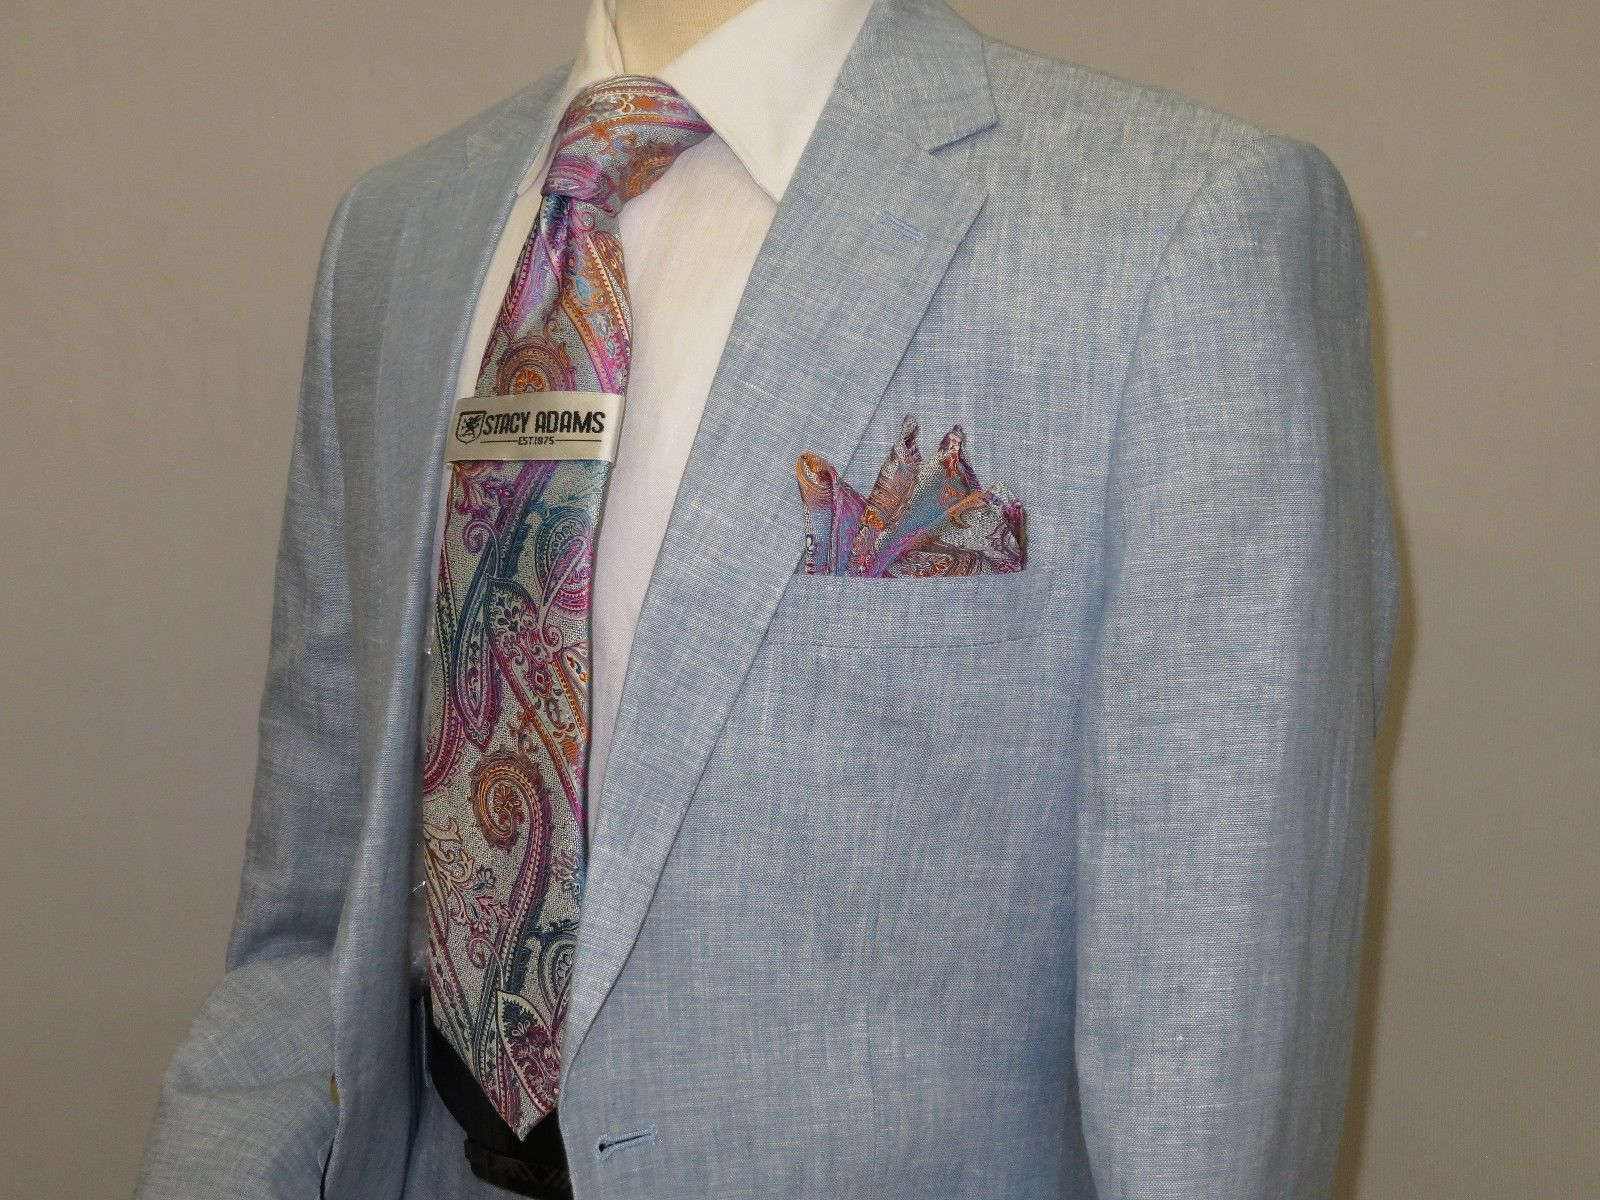 Primary image for Mens Summer Linen Suit Apollo King Half Lined 2 Button European LN5 Light blue